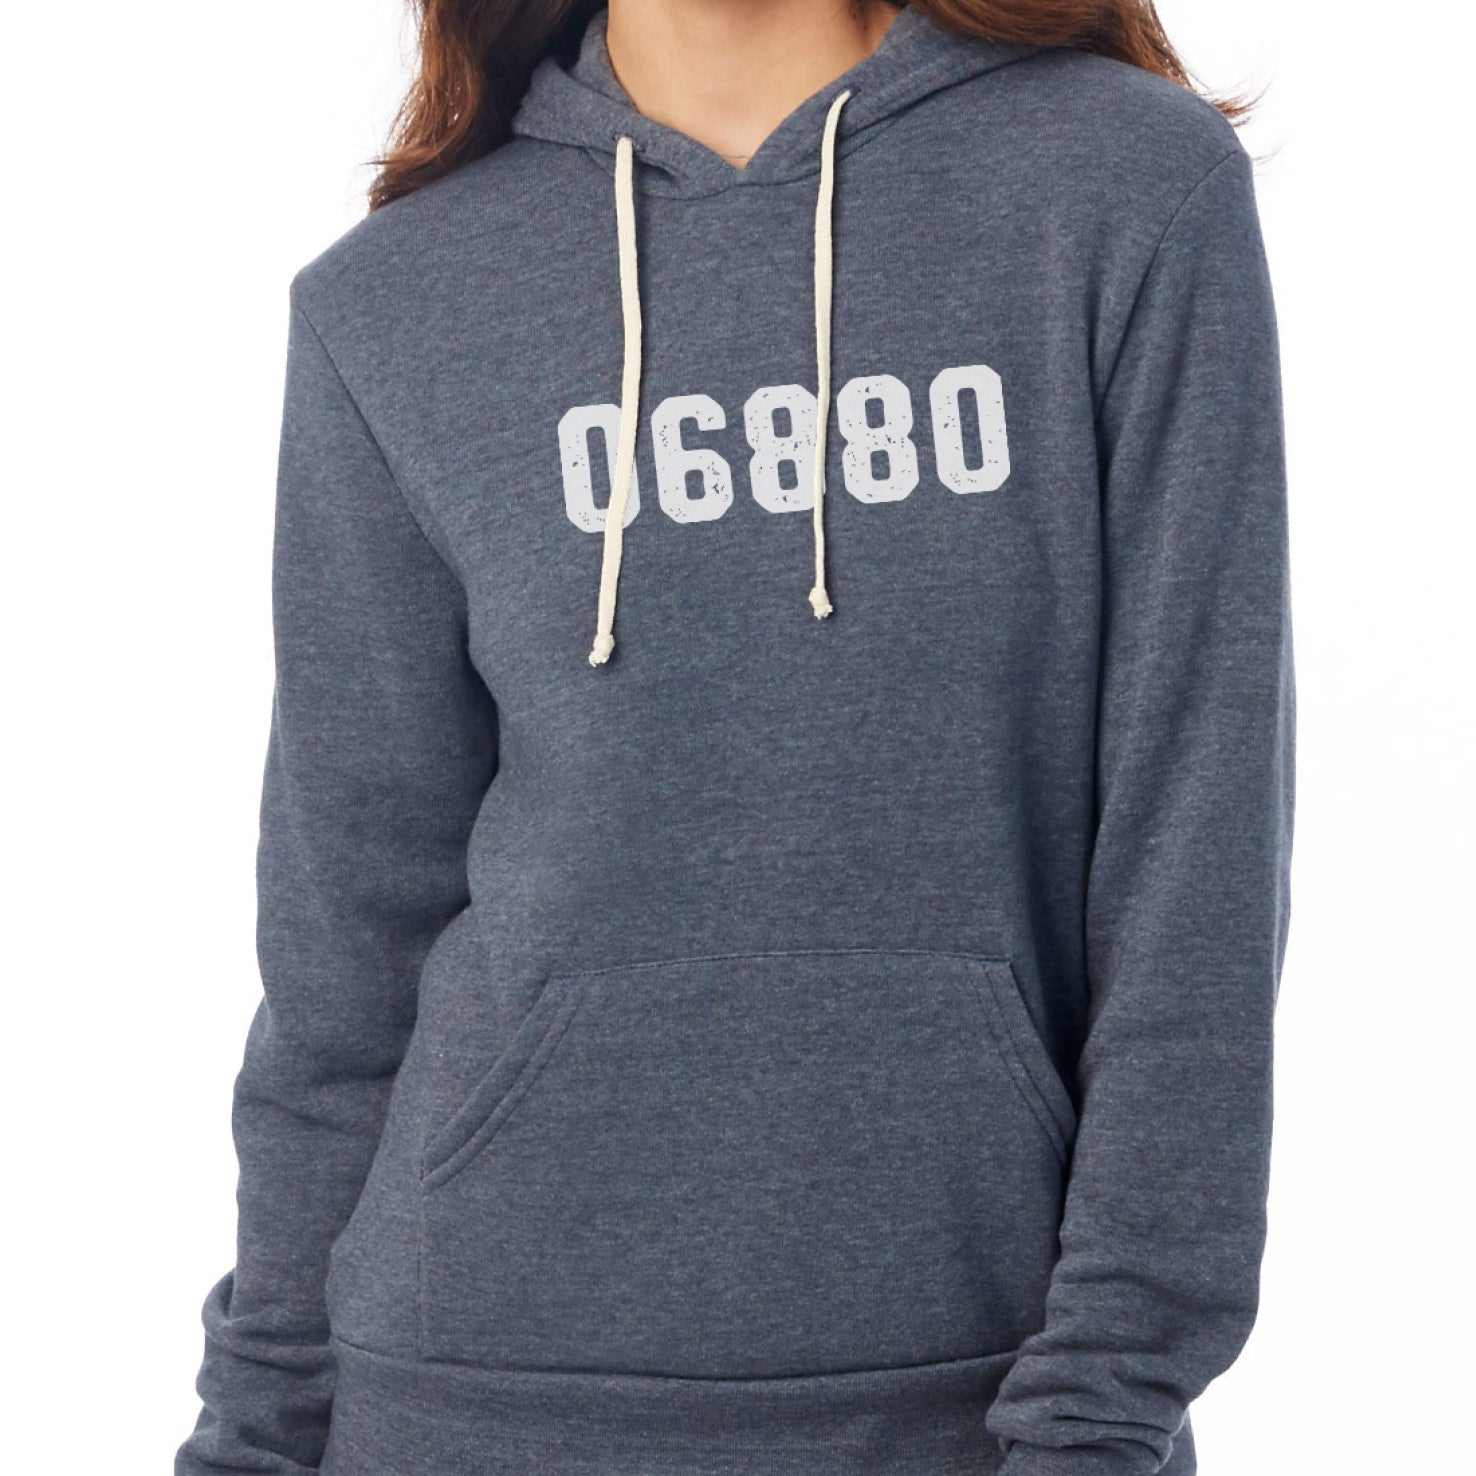 Westport Sweatshirt by Townee - Post Code Hoodie (female)